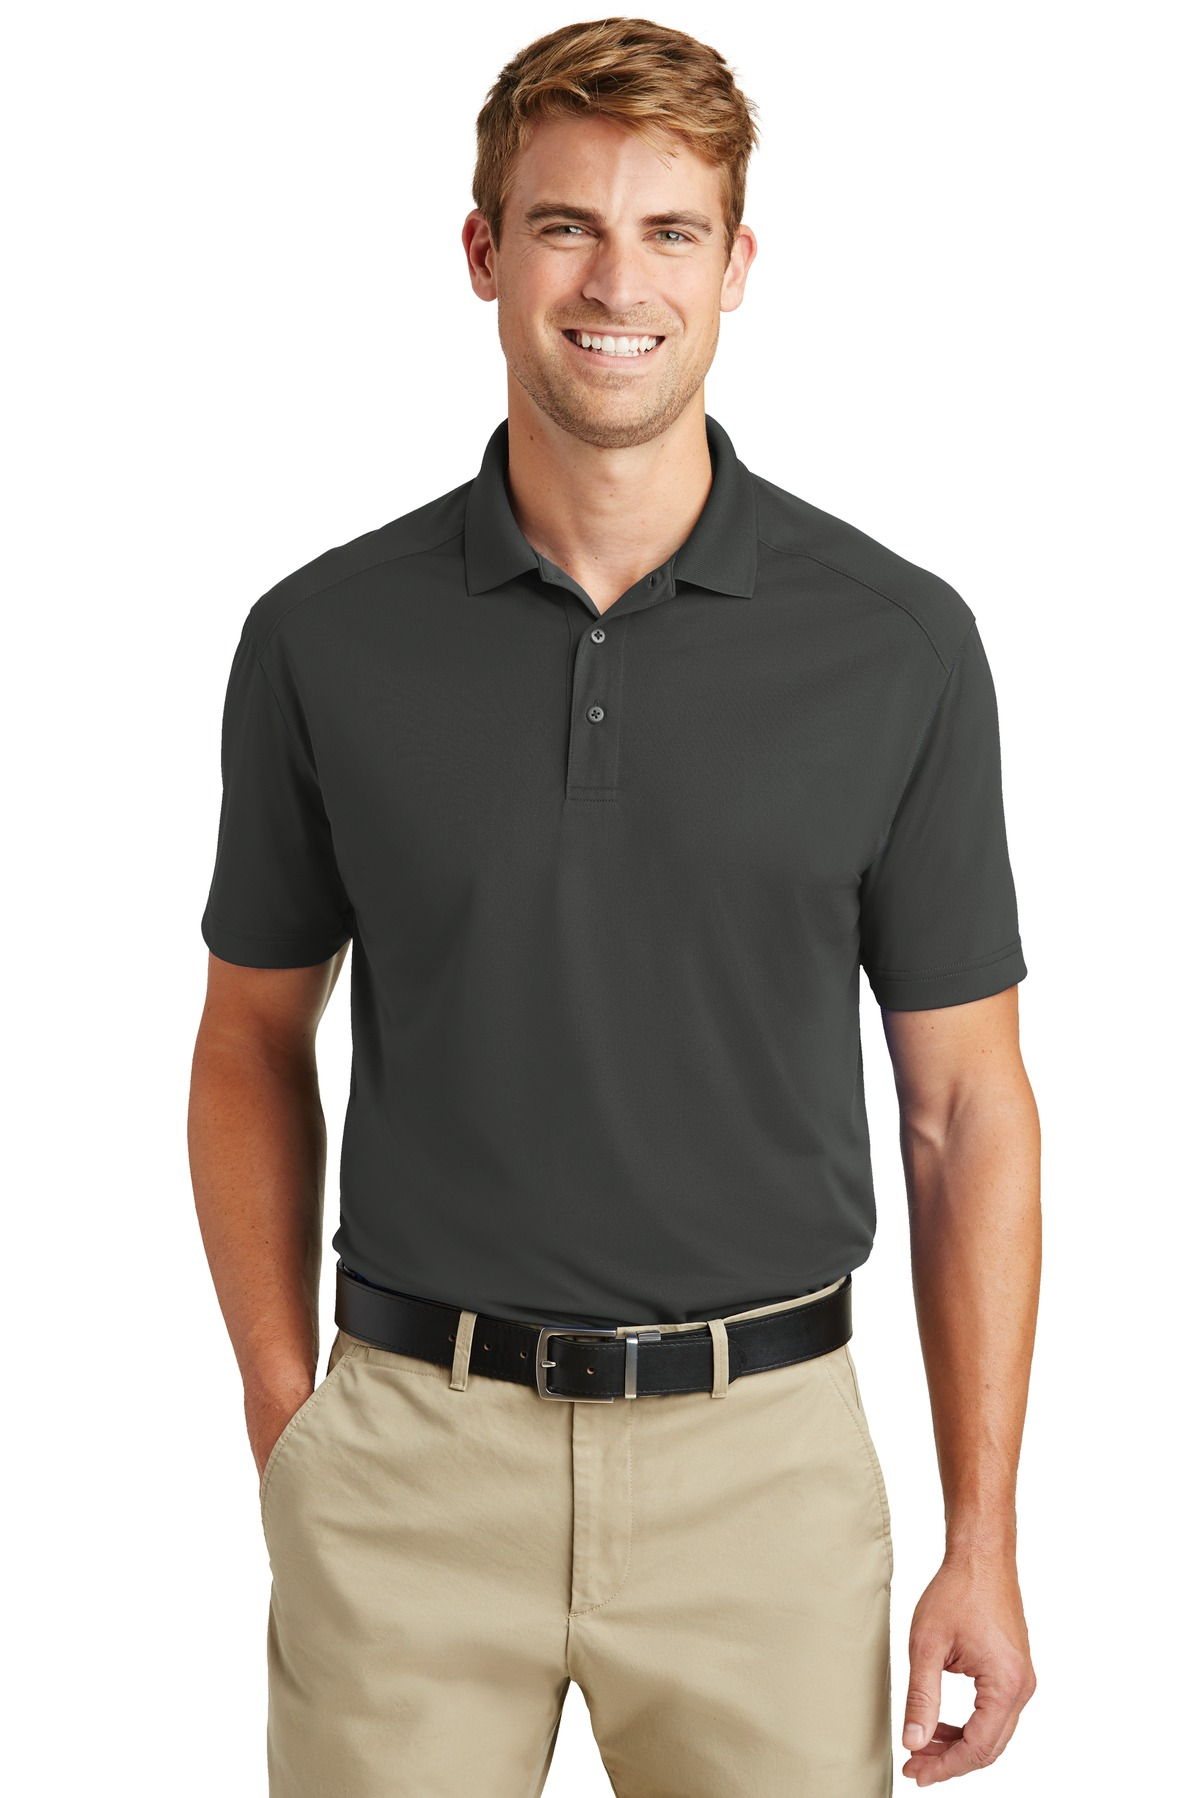 CornerStone® Select Lightweight Snag-Proof Polo.-Arizona Uniform